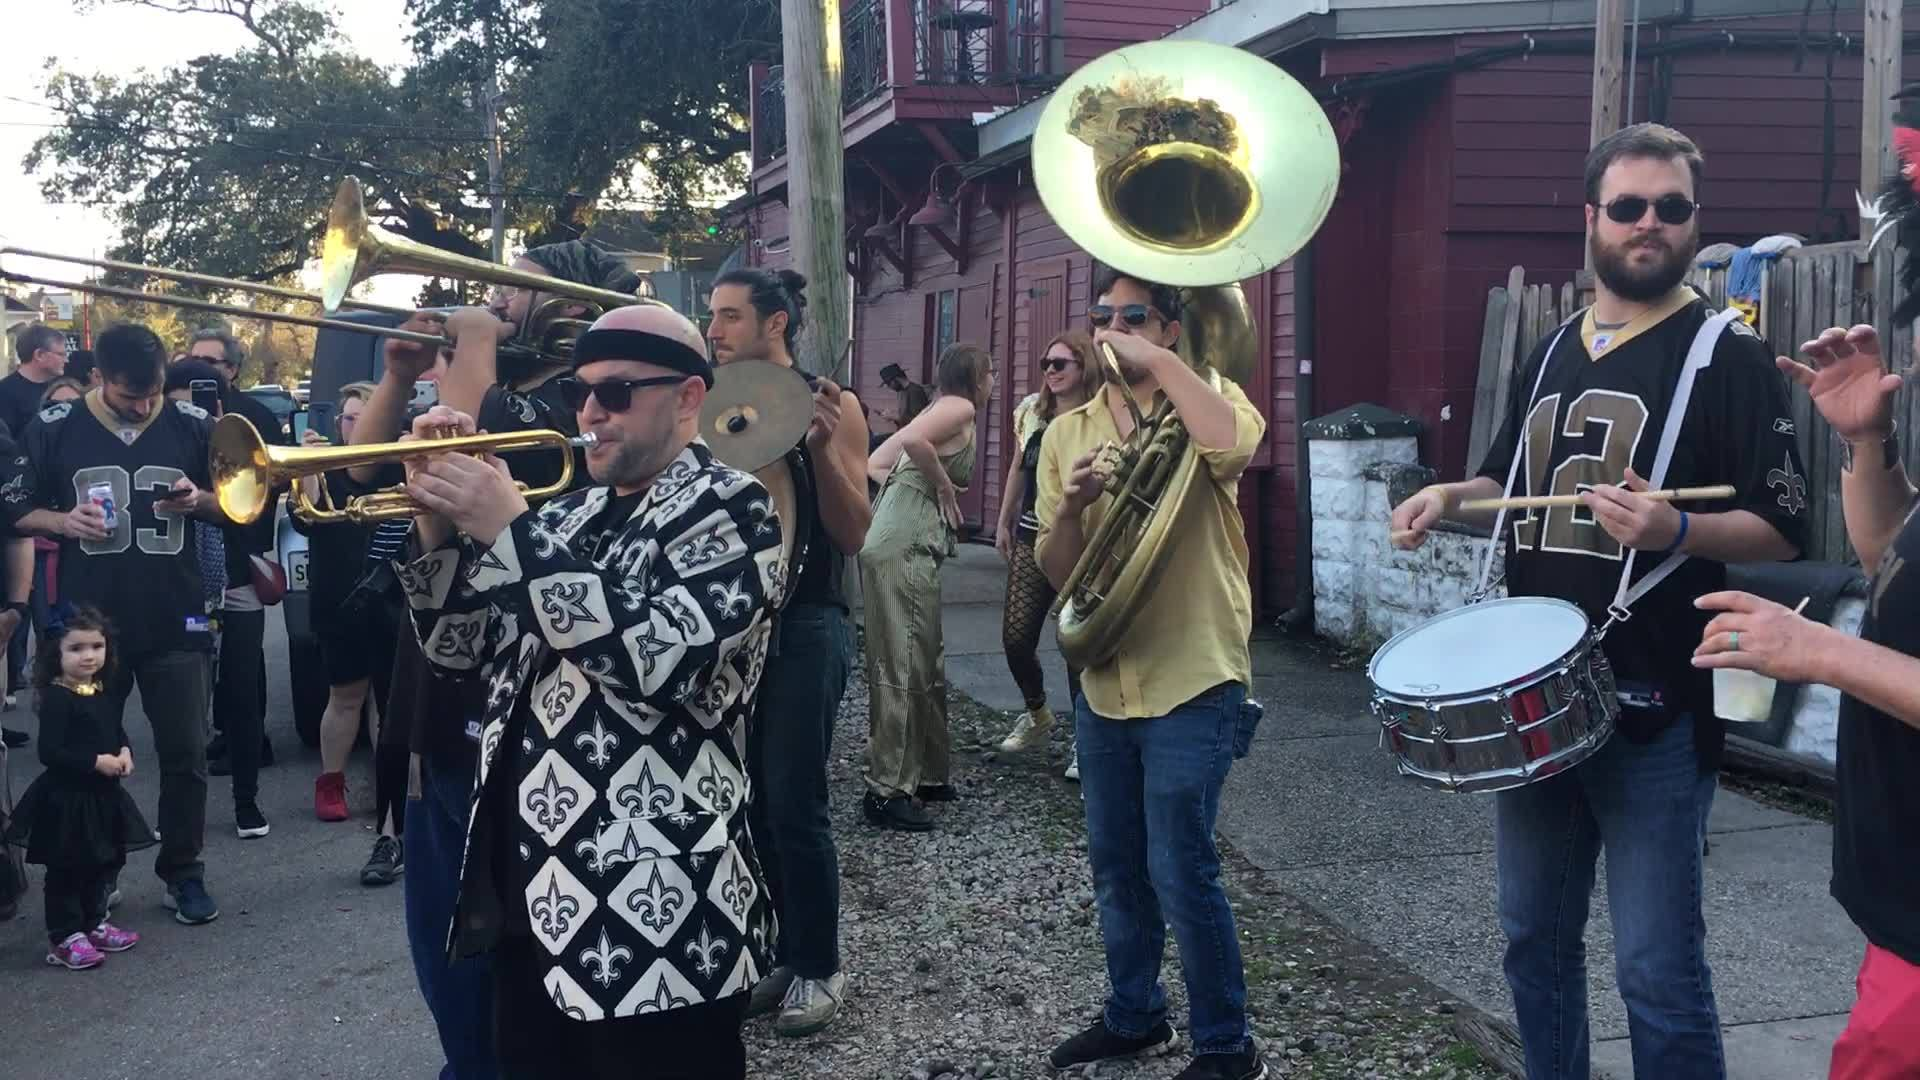 My first Anti-Super Bowl party! New Orleans is boycotting the Superbowl because of the bad/non-call in the playoff game against LA. That doesn't stop the parades and block parties. I think I love anti-Super Bowl!